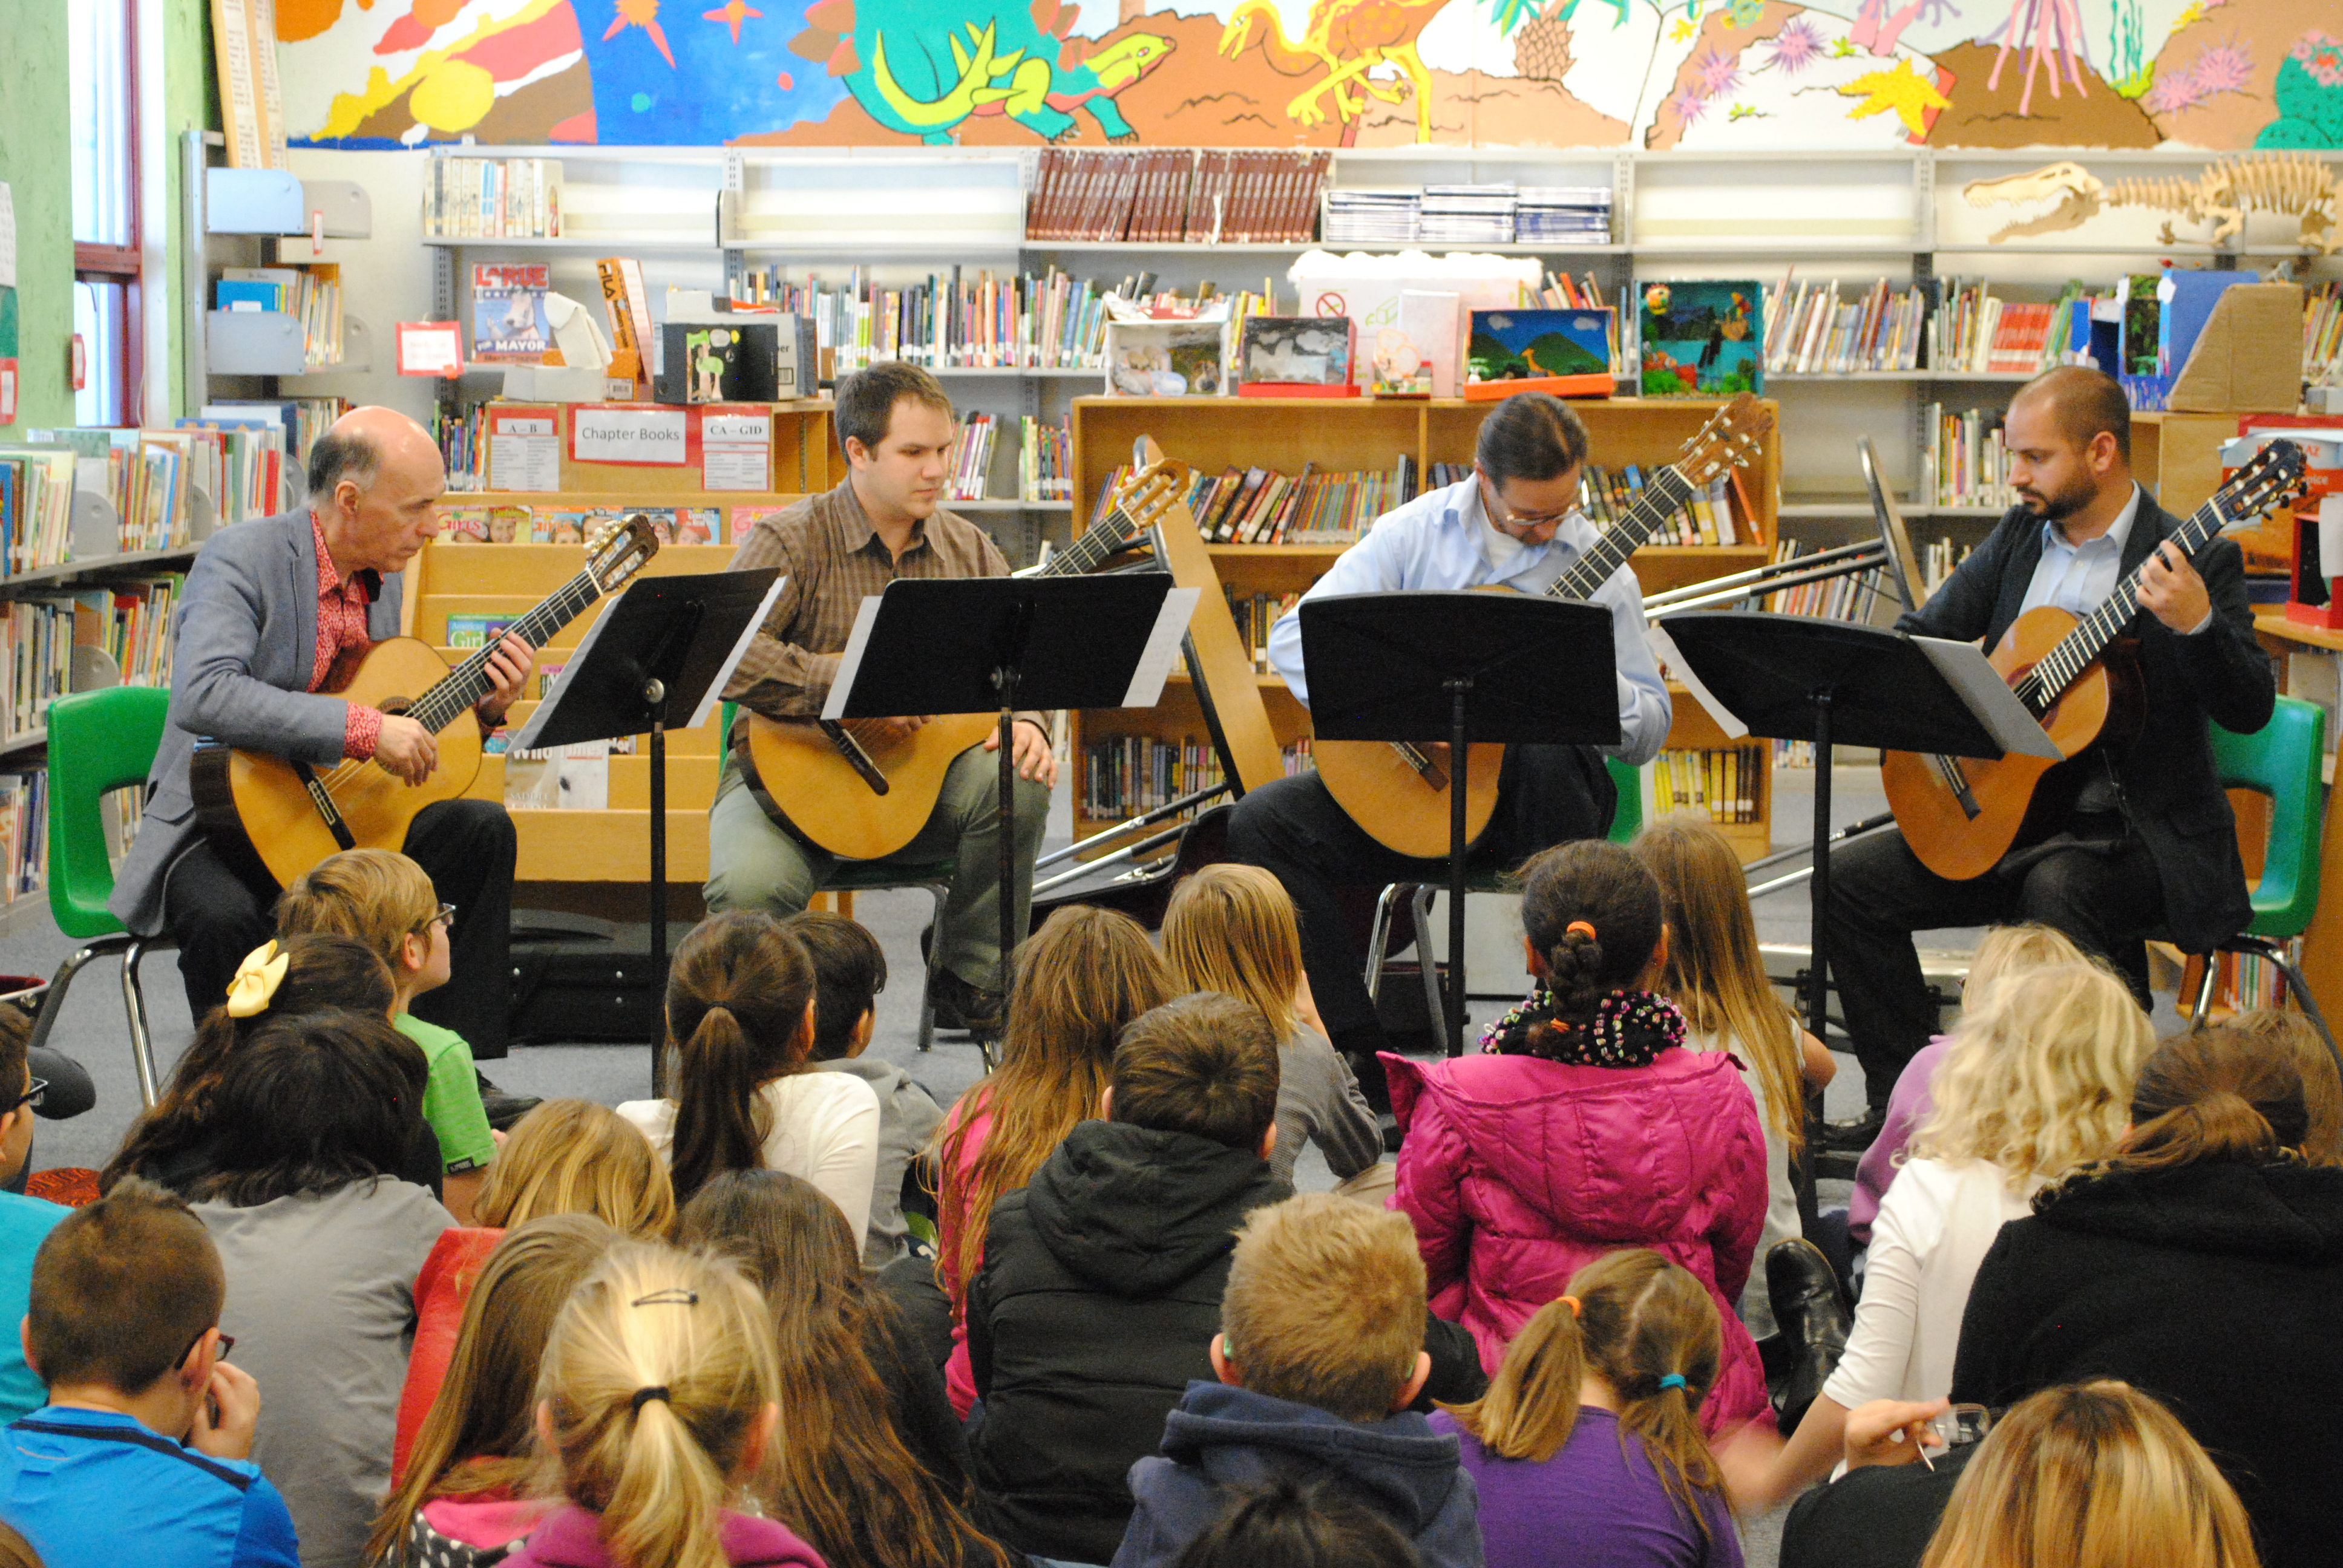 Lead Guitar guest artists perform for an elementary school